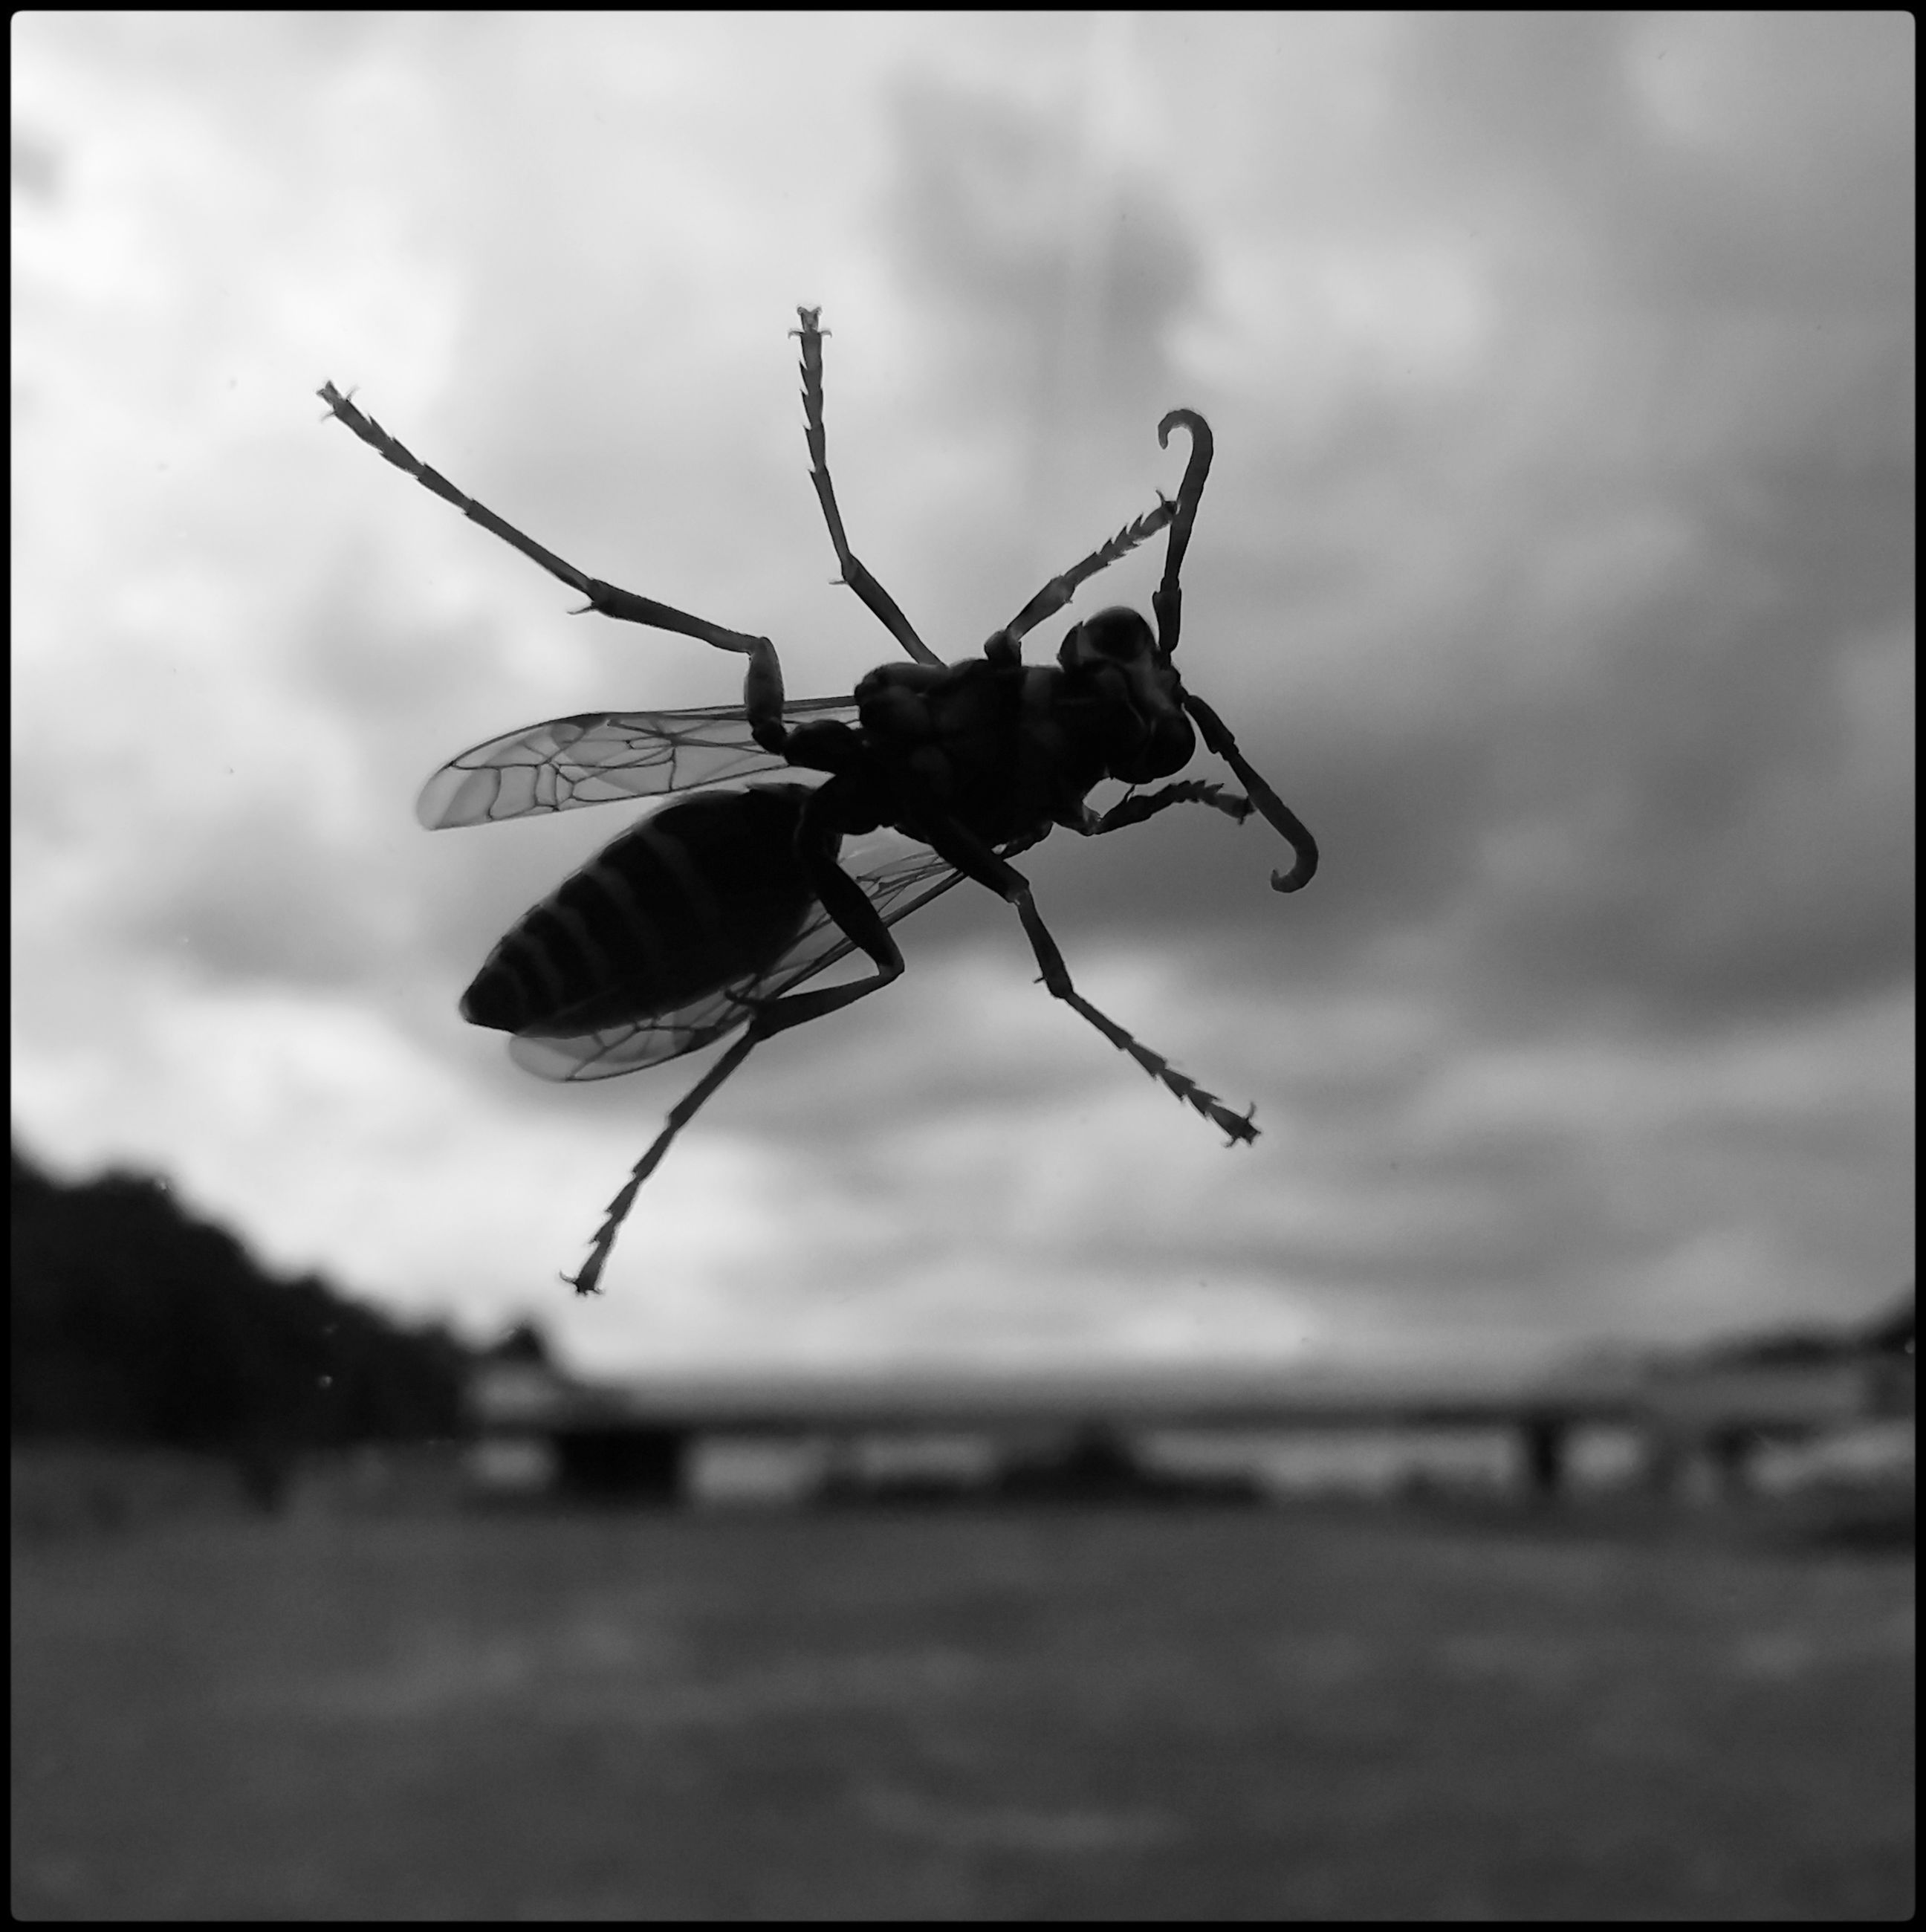 animal themes, animal, insect, animal wildlife, one animal, black and white, wildlife, focus on foreground, monochrome, close-up, monochrome photography, nature, animal body part, no people, auto post production filter, outdoors, black, day, transfer print, animal wing